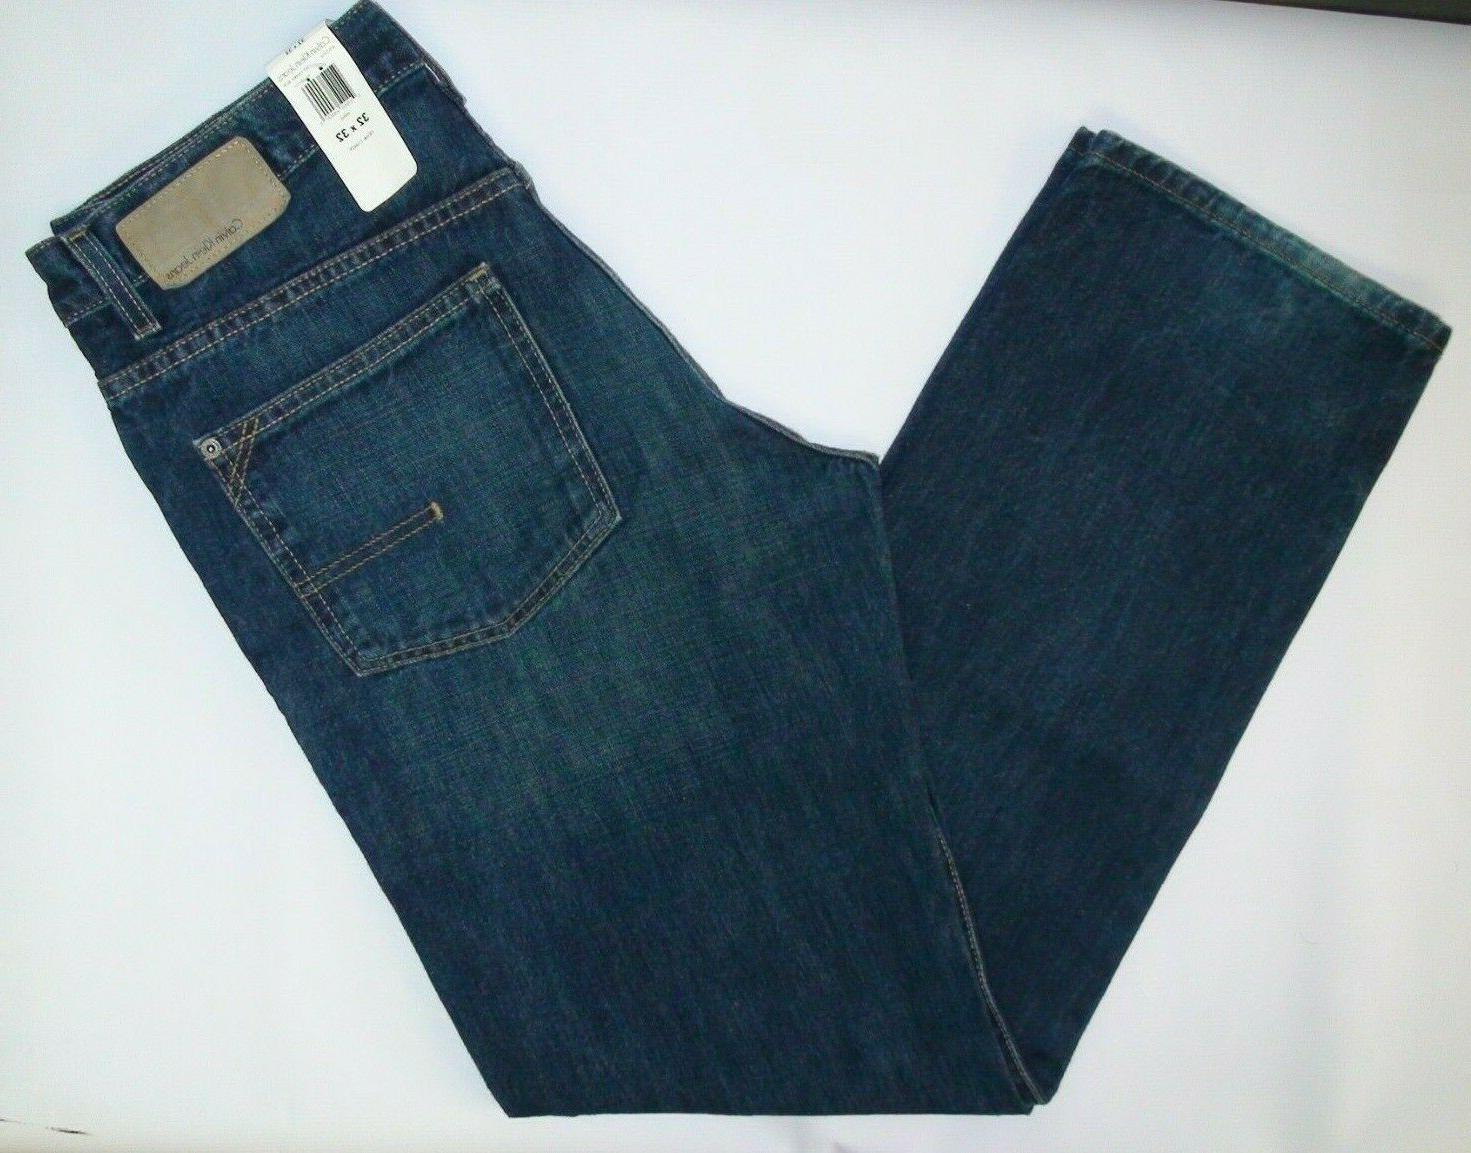 CALVIN KLEIN JEANS BNWT MENS RELAXED FIT JEANS sz 32 X 32 Os